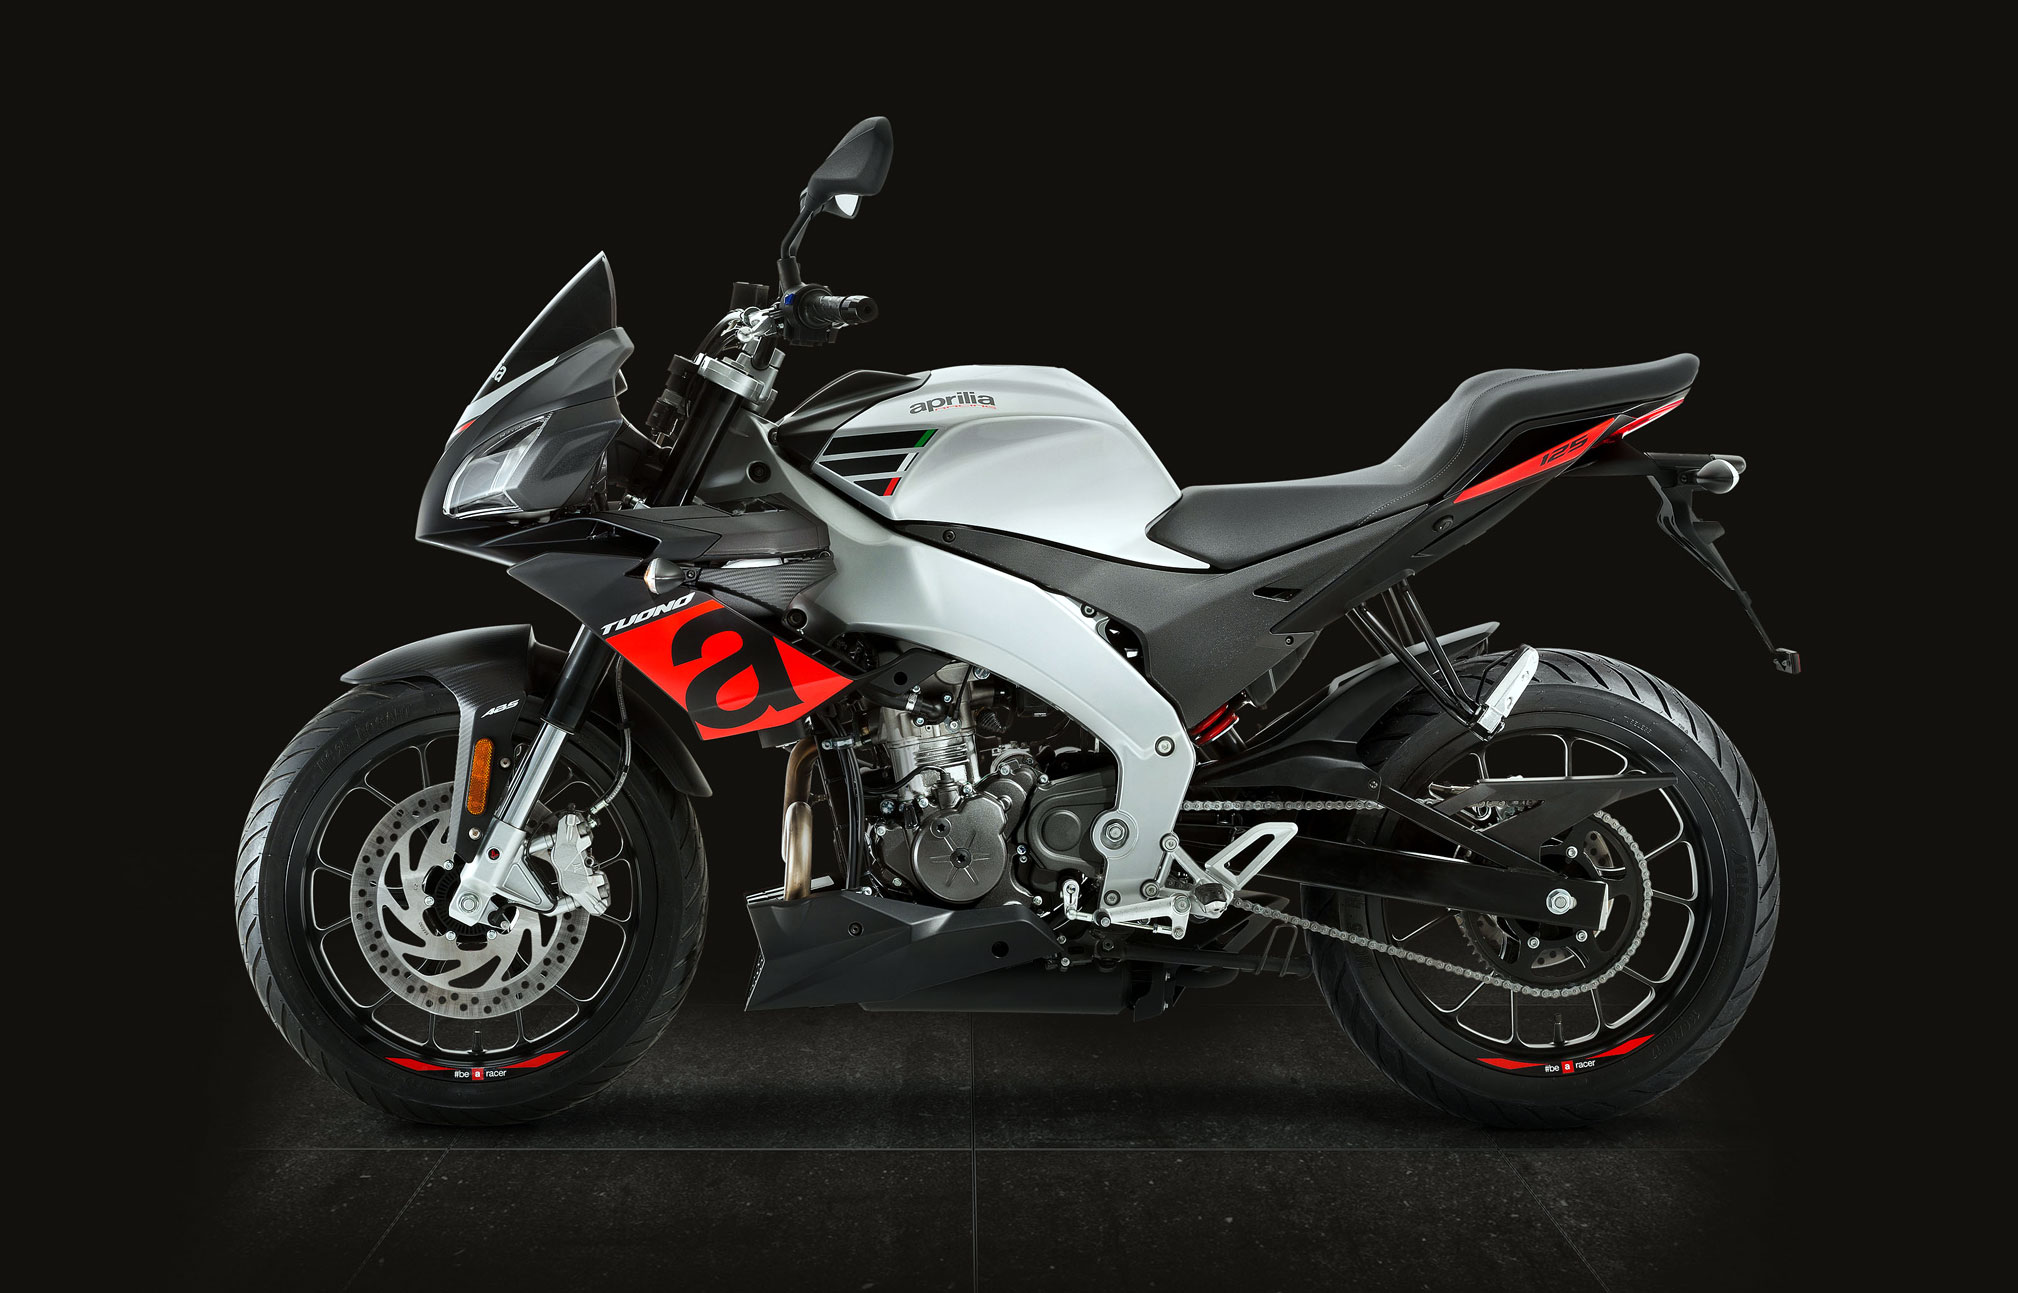 2018 aprilia tuono 125 review totalmotorcycle. Black Bedroom Furniture Sets. Home Design Ideas